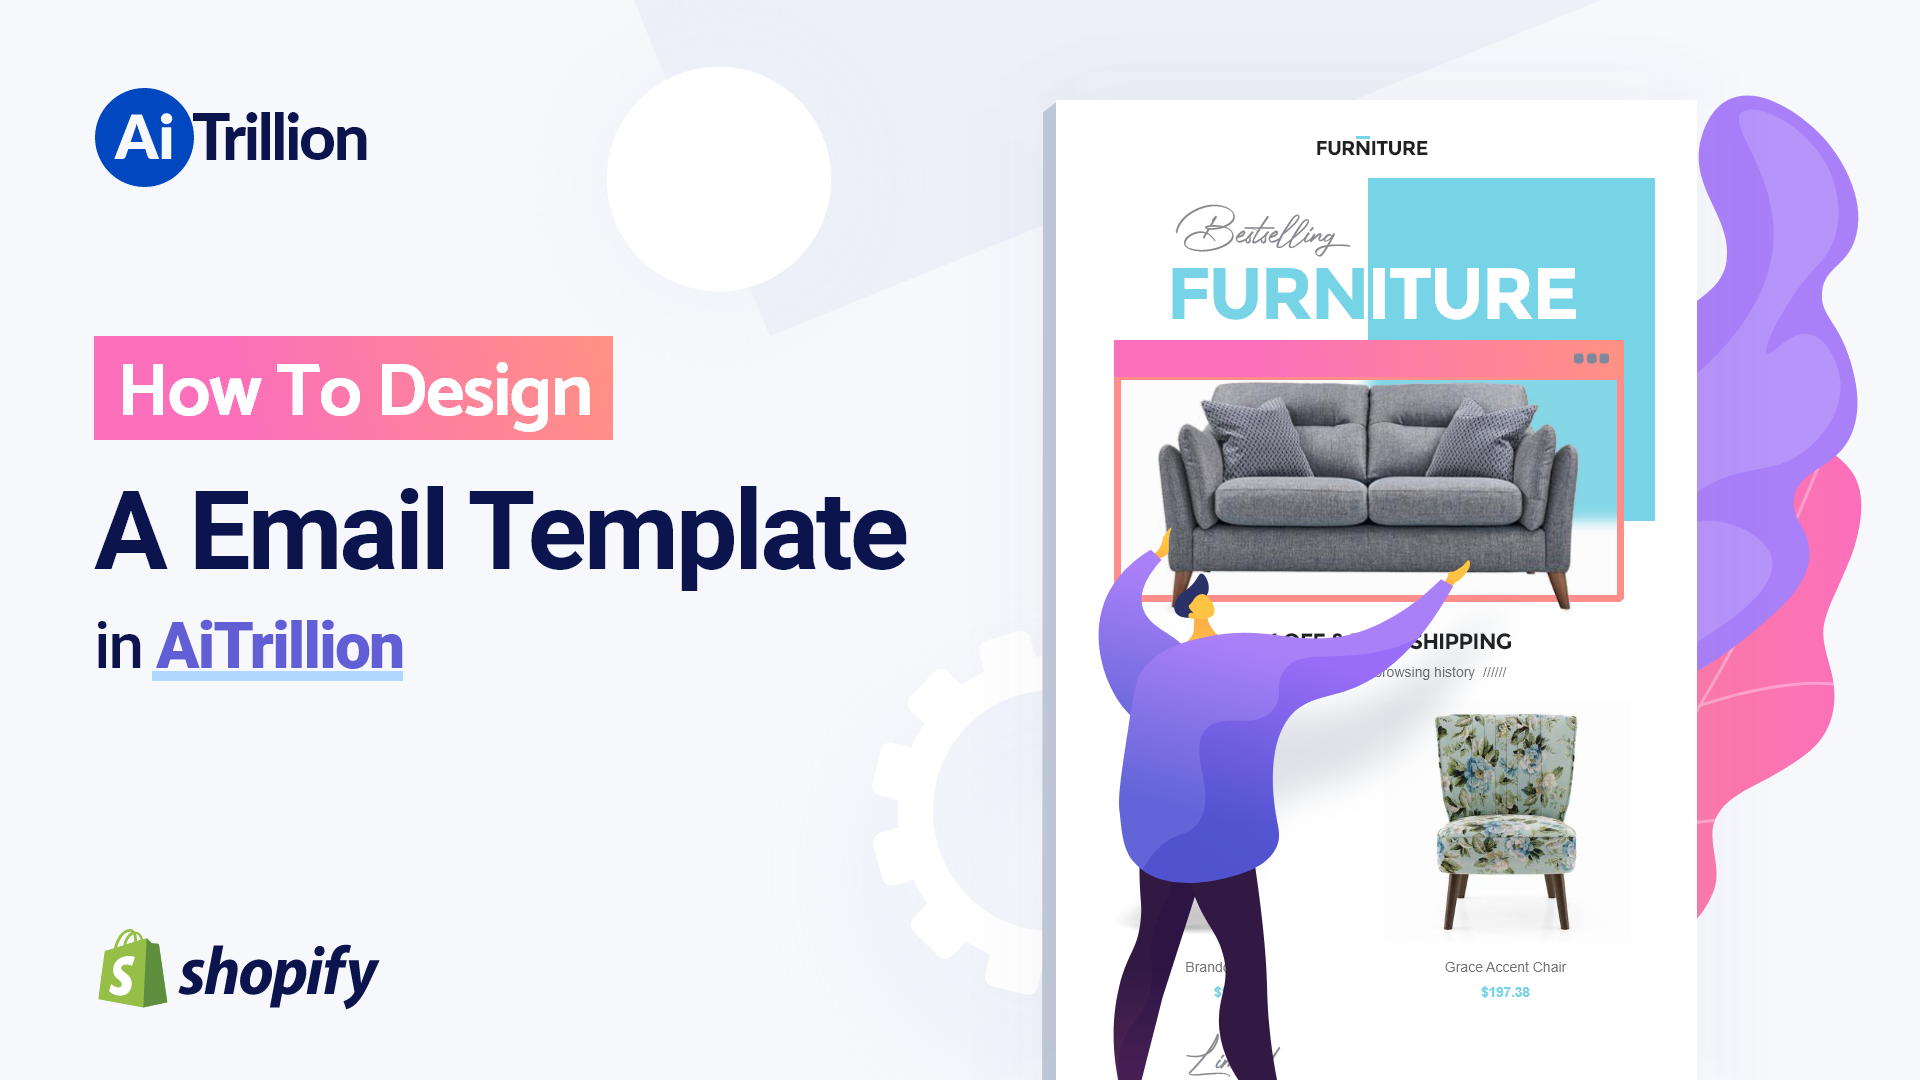 How To Design A Email Template in AiTrillion